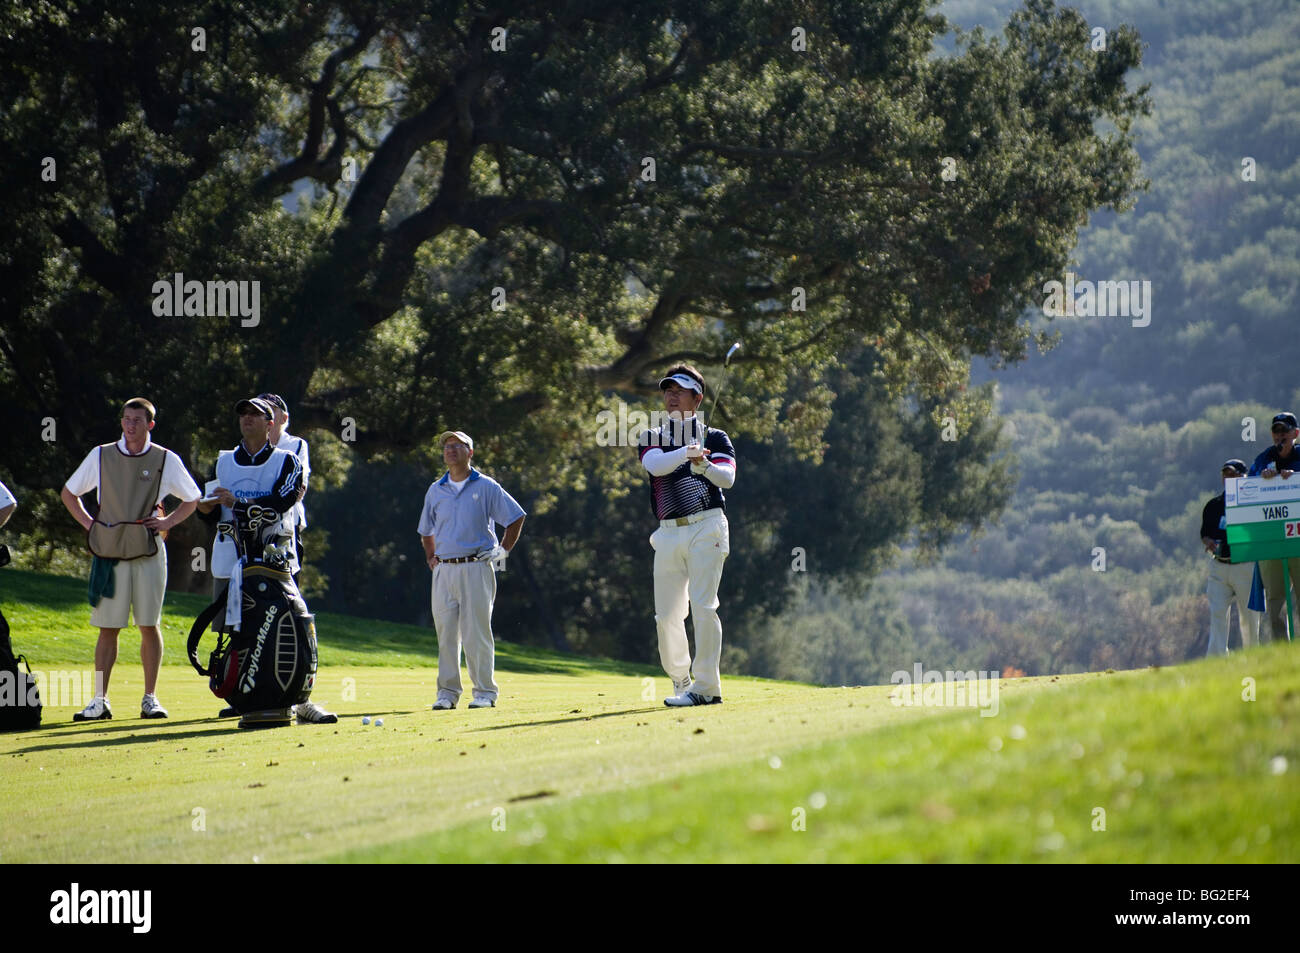 Y.E. Yang hits an approach shot to the 18th green during the Pro Am of the Chevron World Golf Challenge. - Stock Image